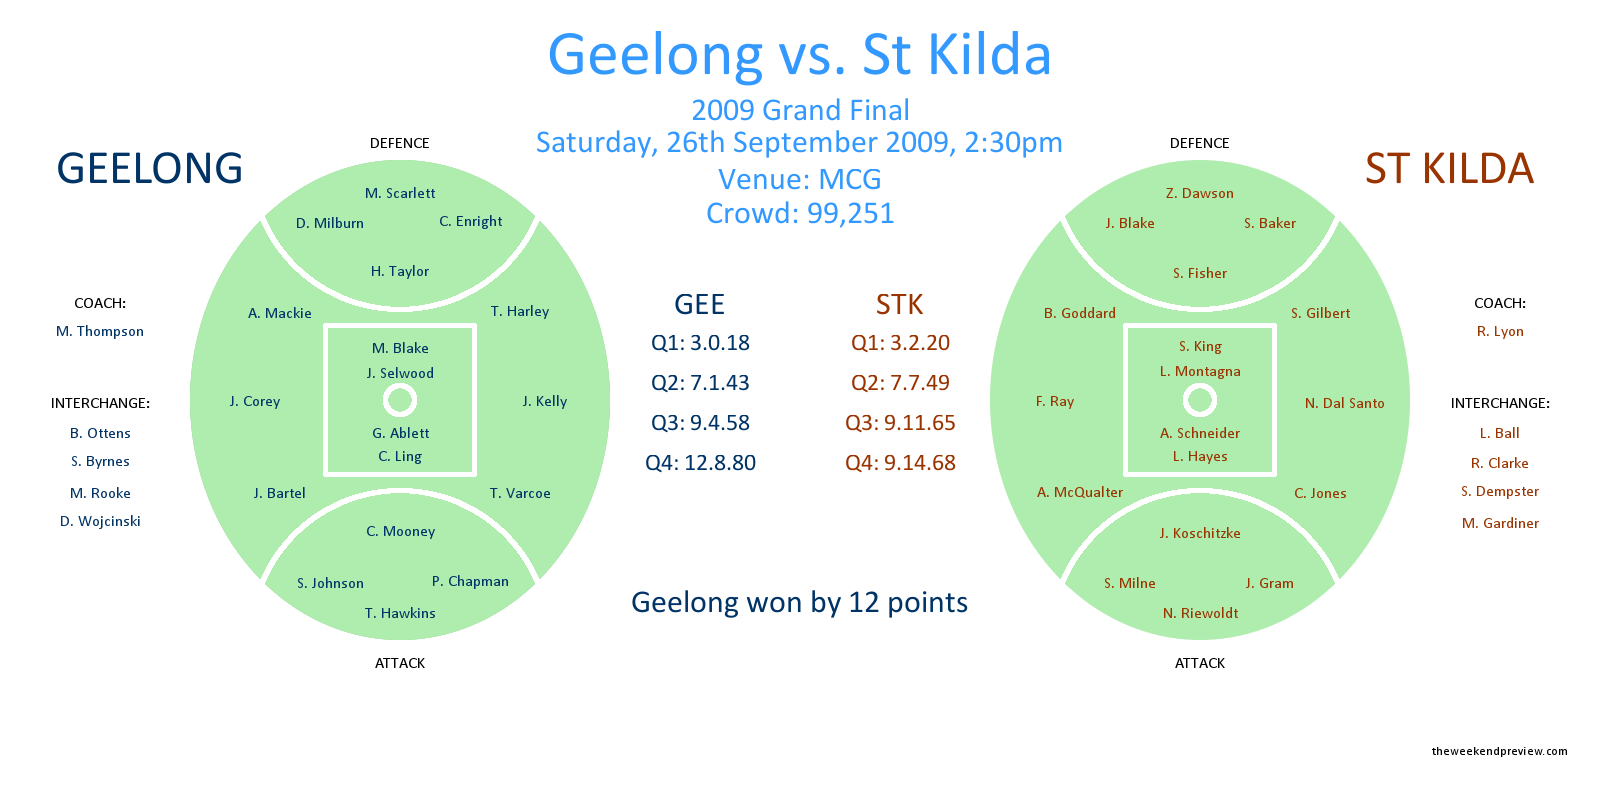 Figure-1: 2009 AFL Grand Final, Geelong vs. St Kilda